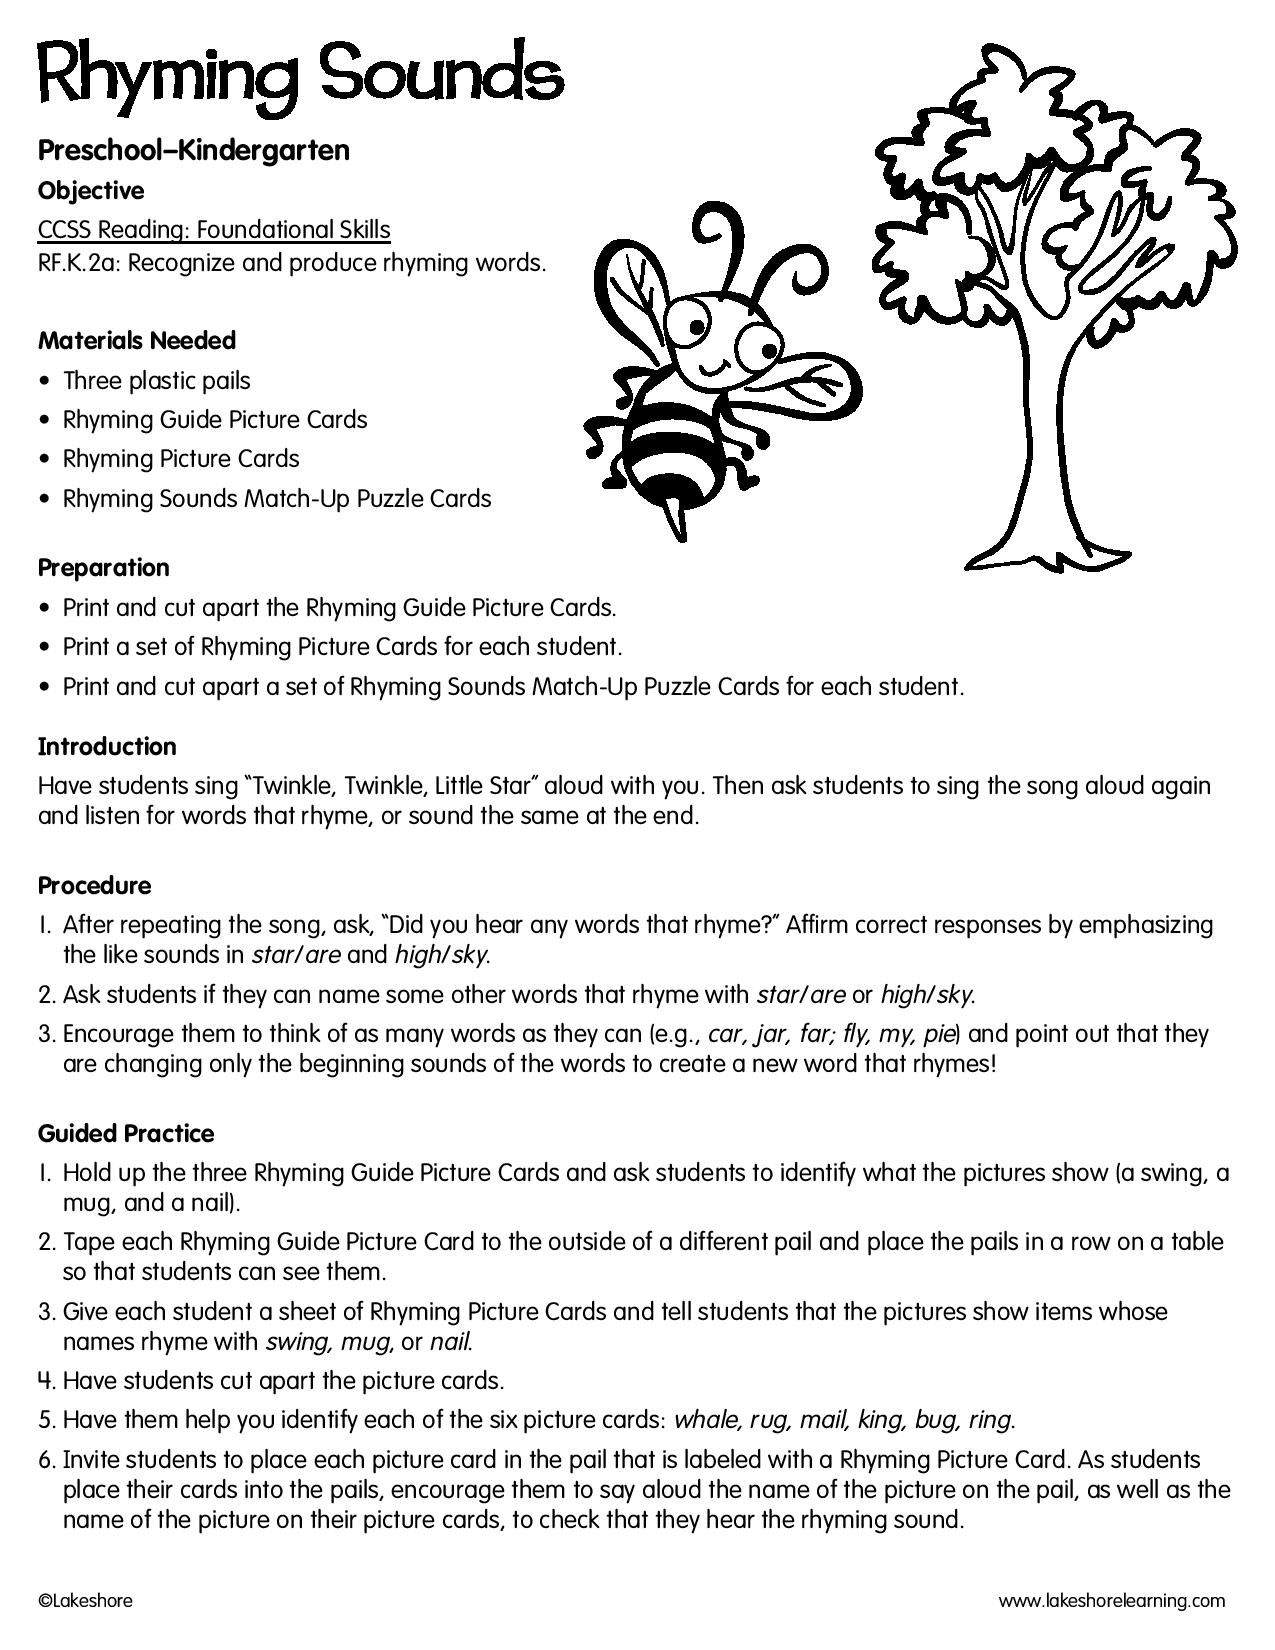 Rhyming Sounds Lessonplan Teacher Lesson Plans Foundational Skills Rhyming Pictures [ 1650 x 1275 Pixel ]